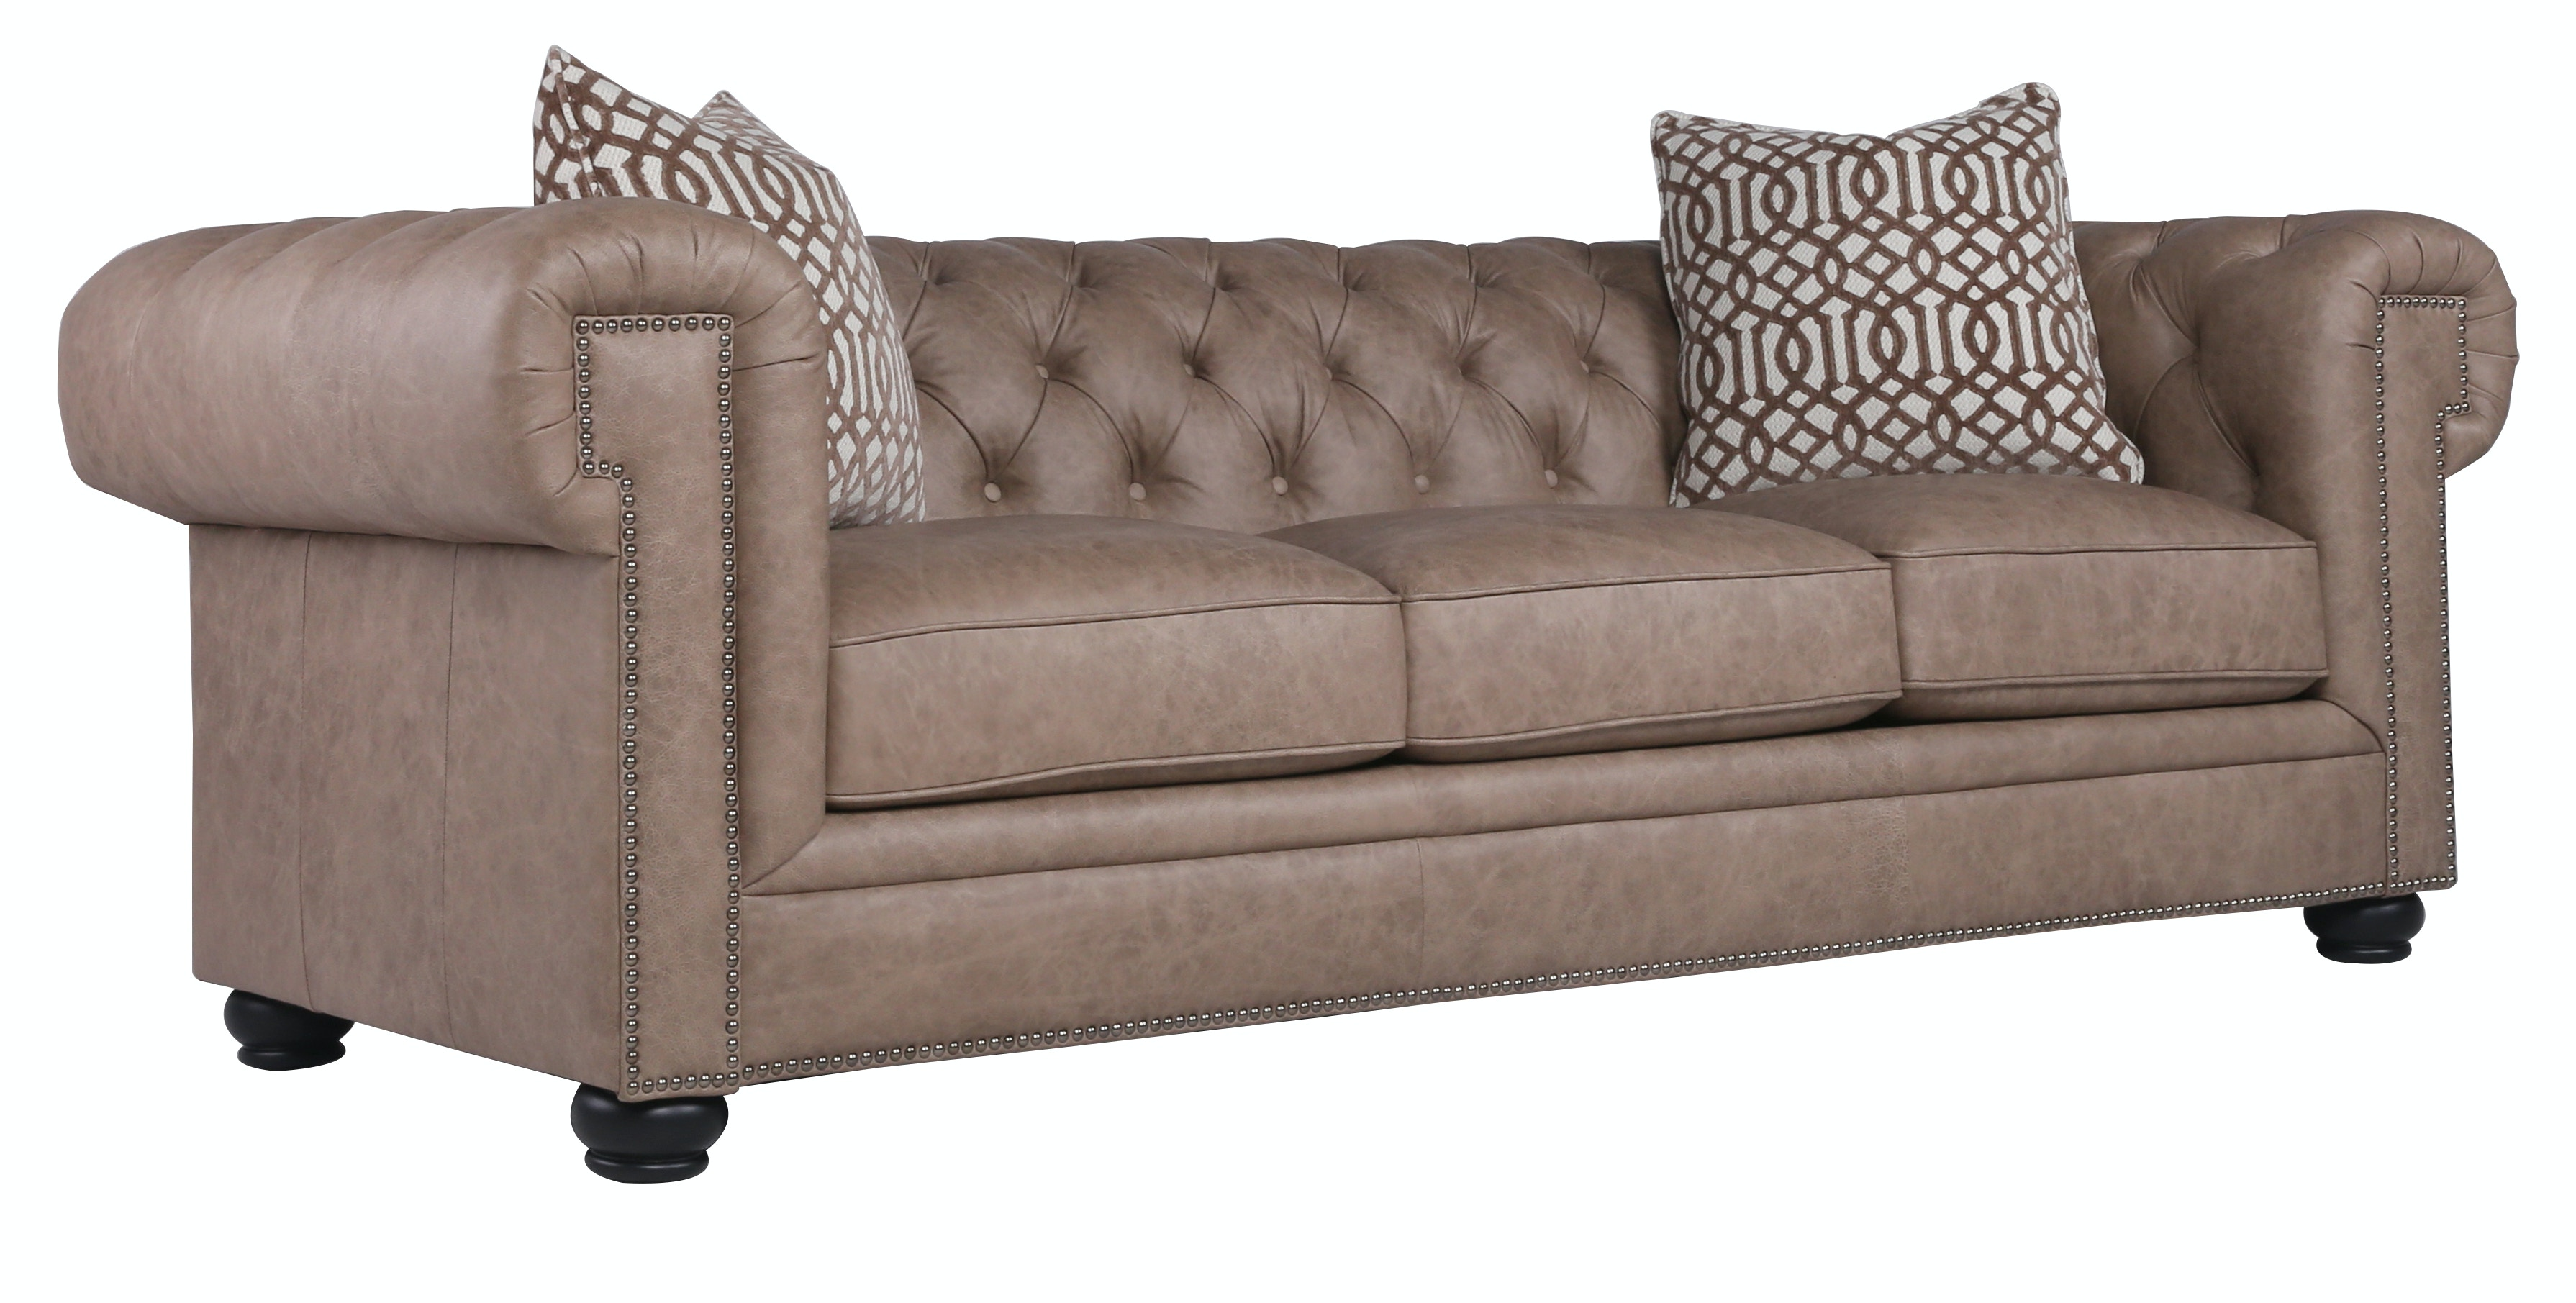 Emma Leather Sofa   HARE ST:475283